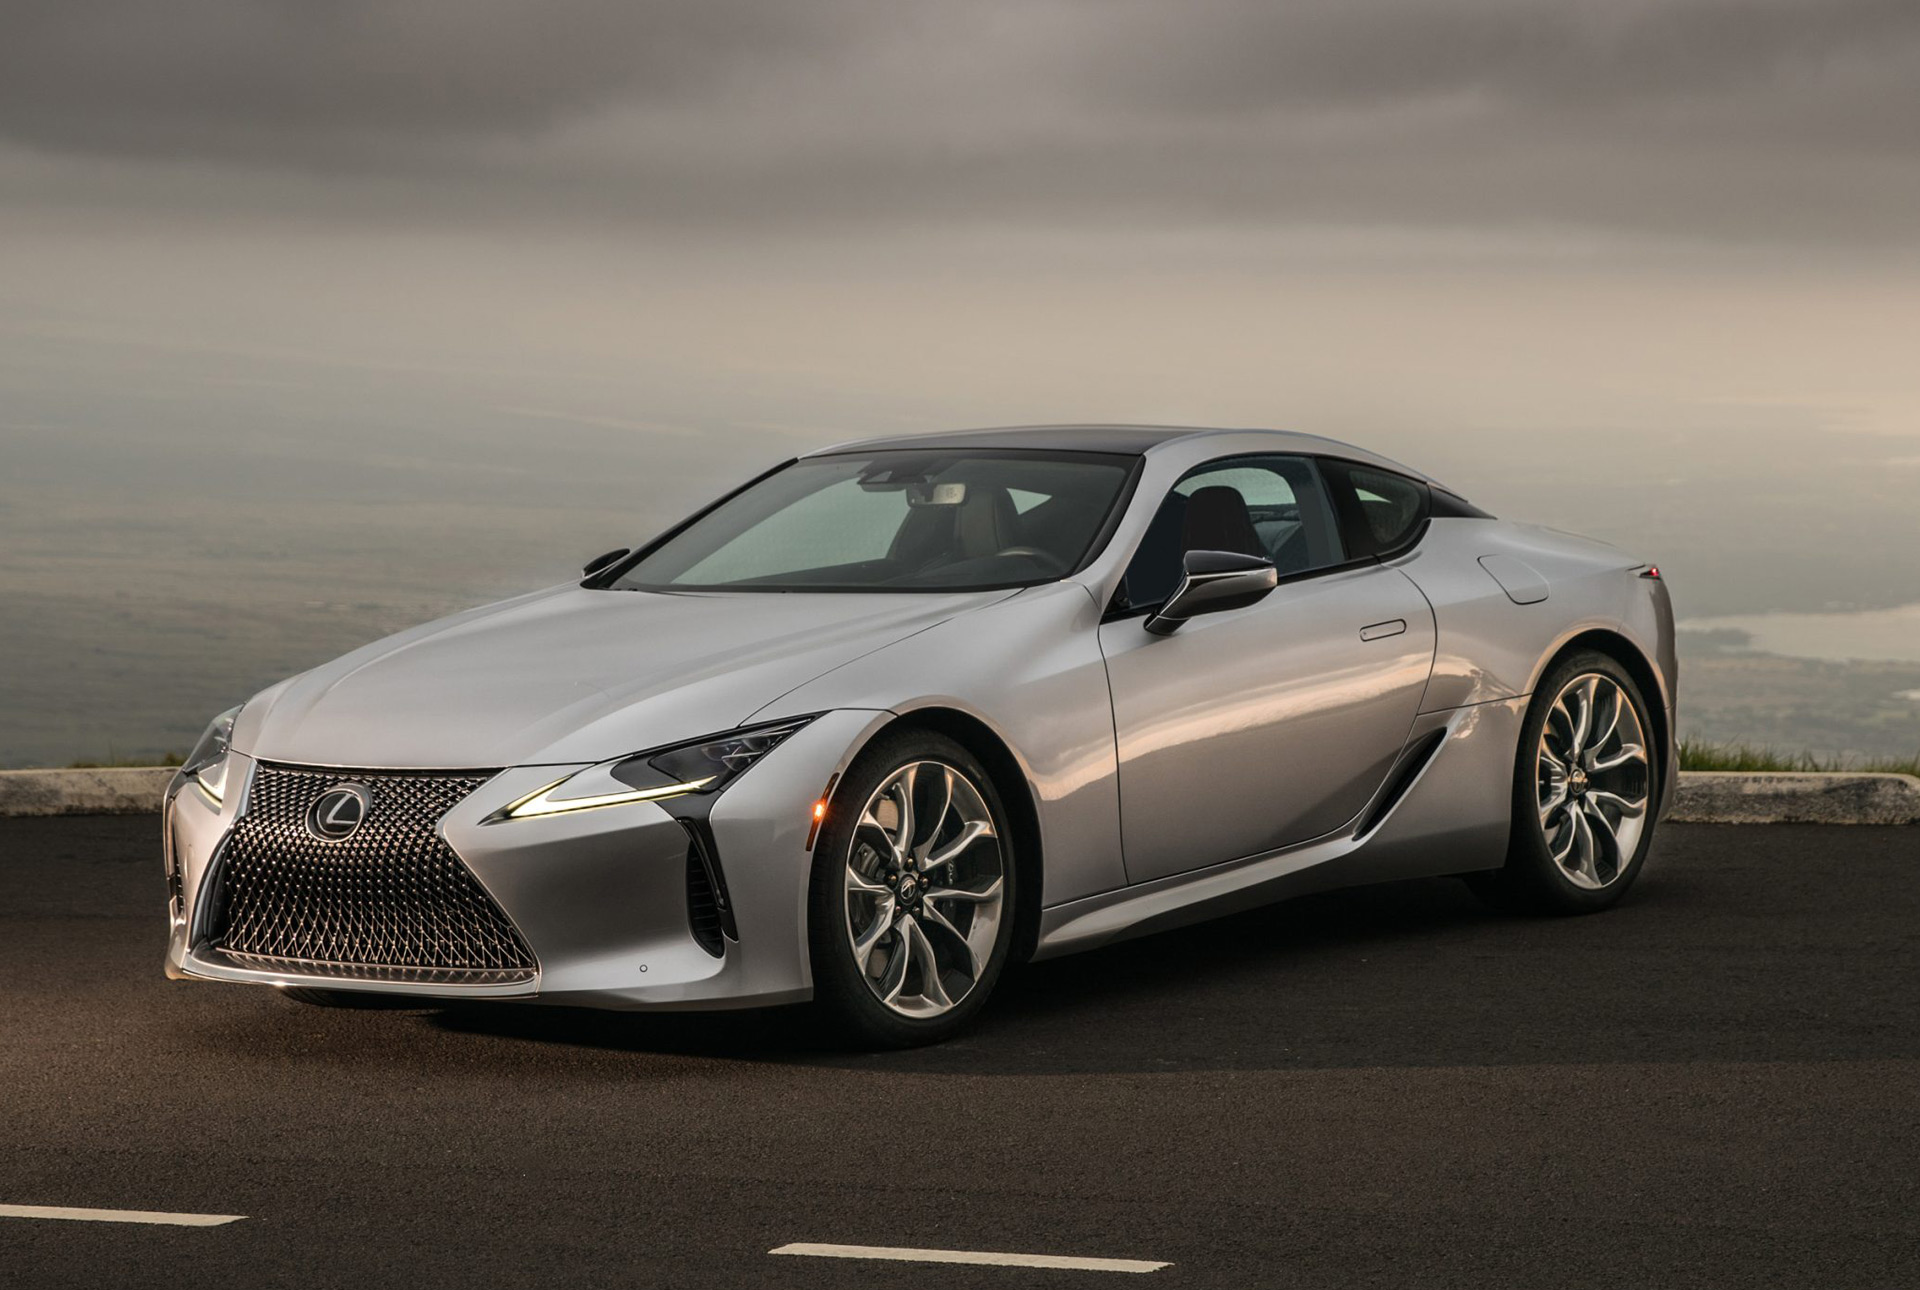 2021 Lexus LC preview: Less weight, a convertible, but still no LC F